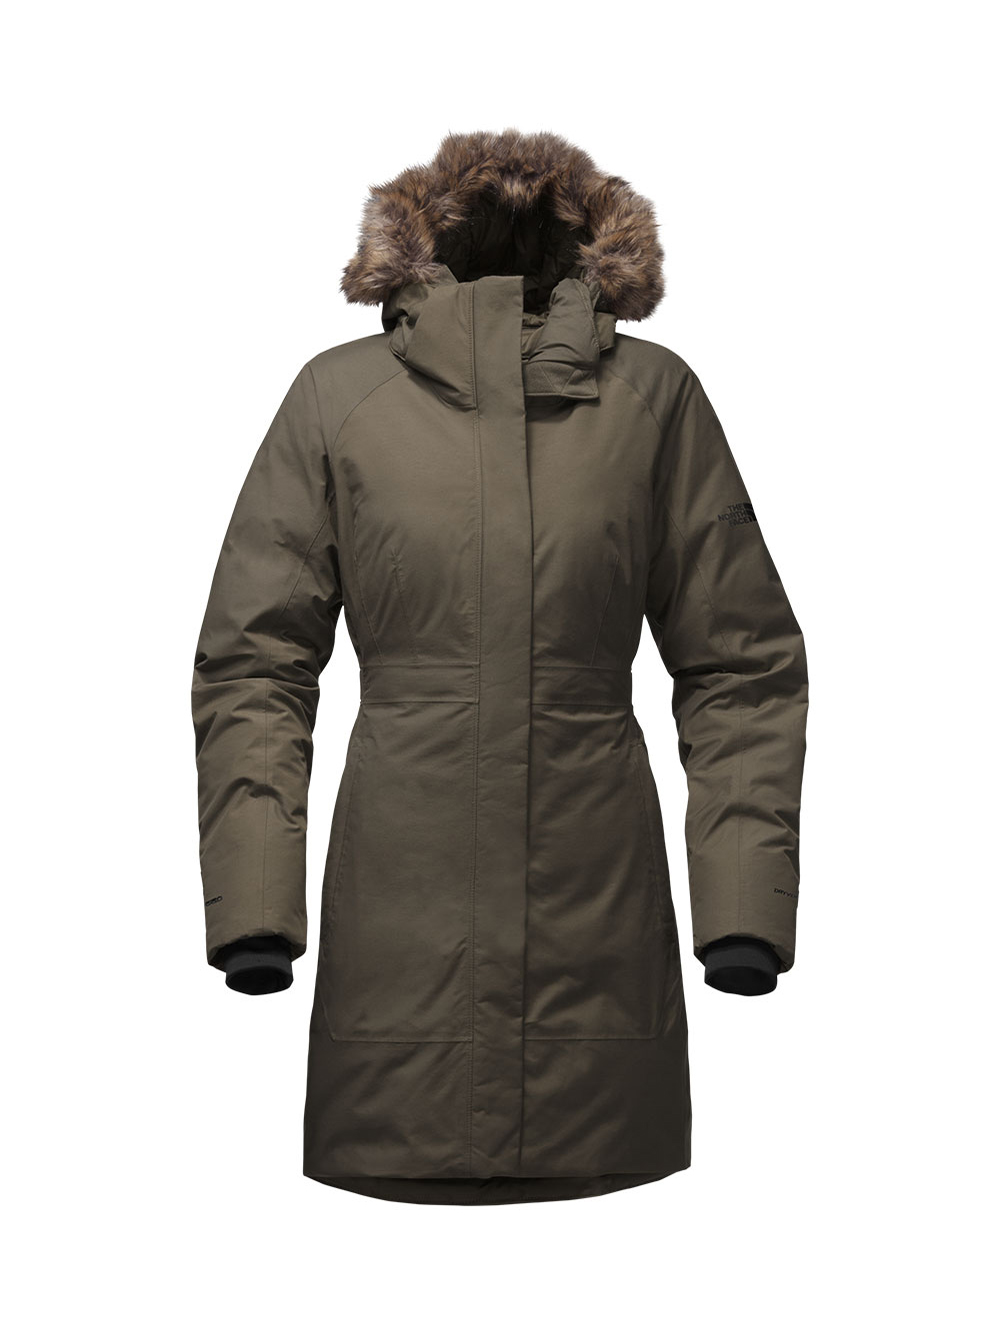 c5e6f1afe Women's Arctic Parka II by The North Face in dark eggplant purple, new  taupe green, sequoia red, tnf black and urban navy from Cookie's Kids